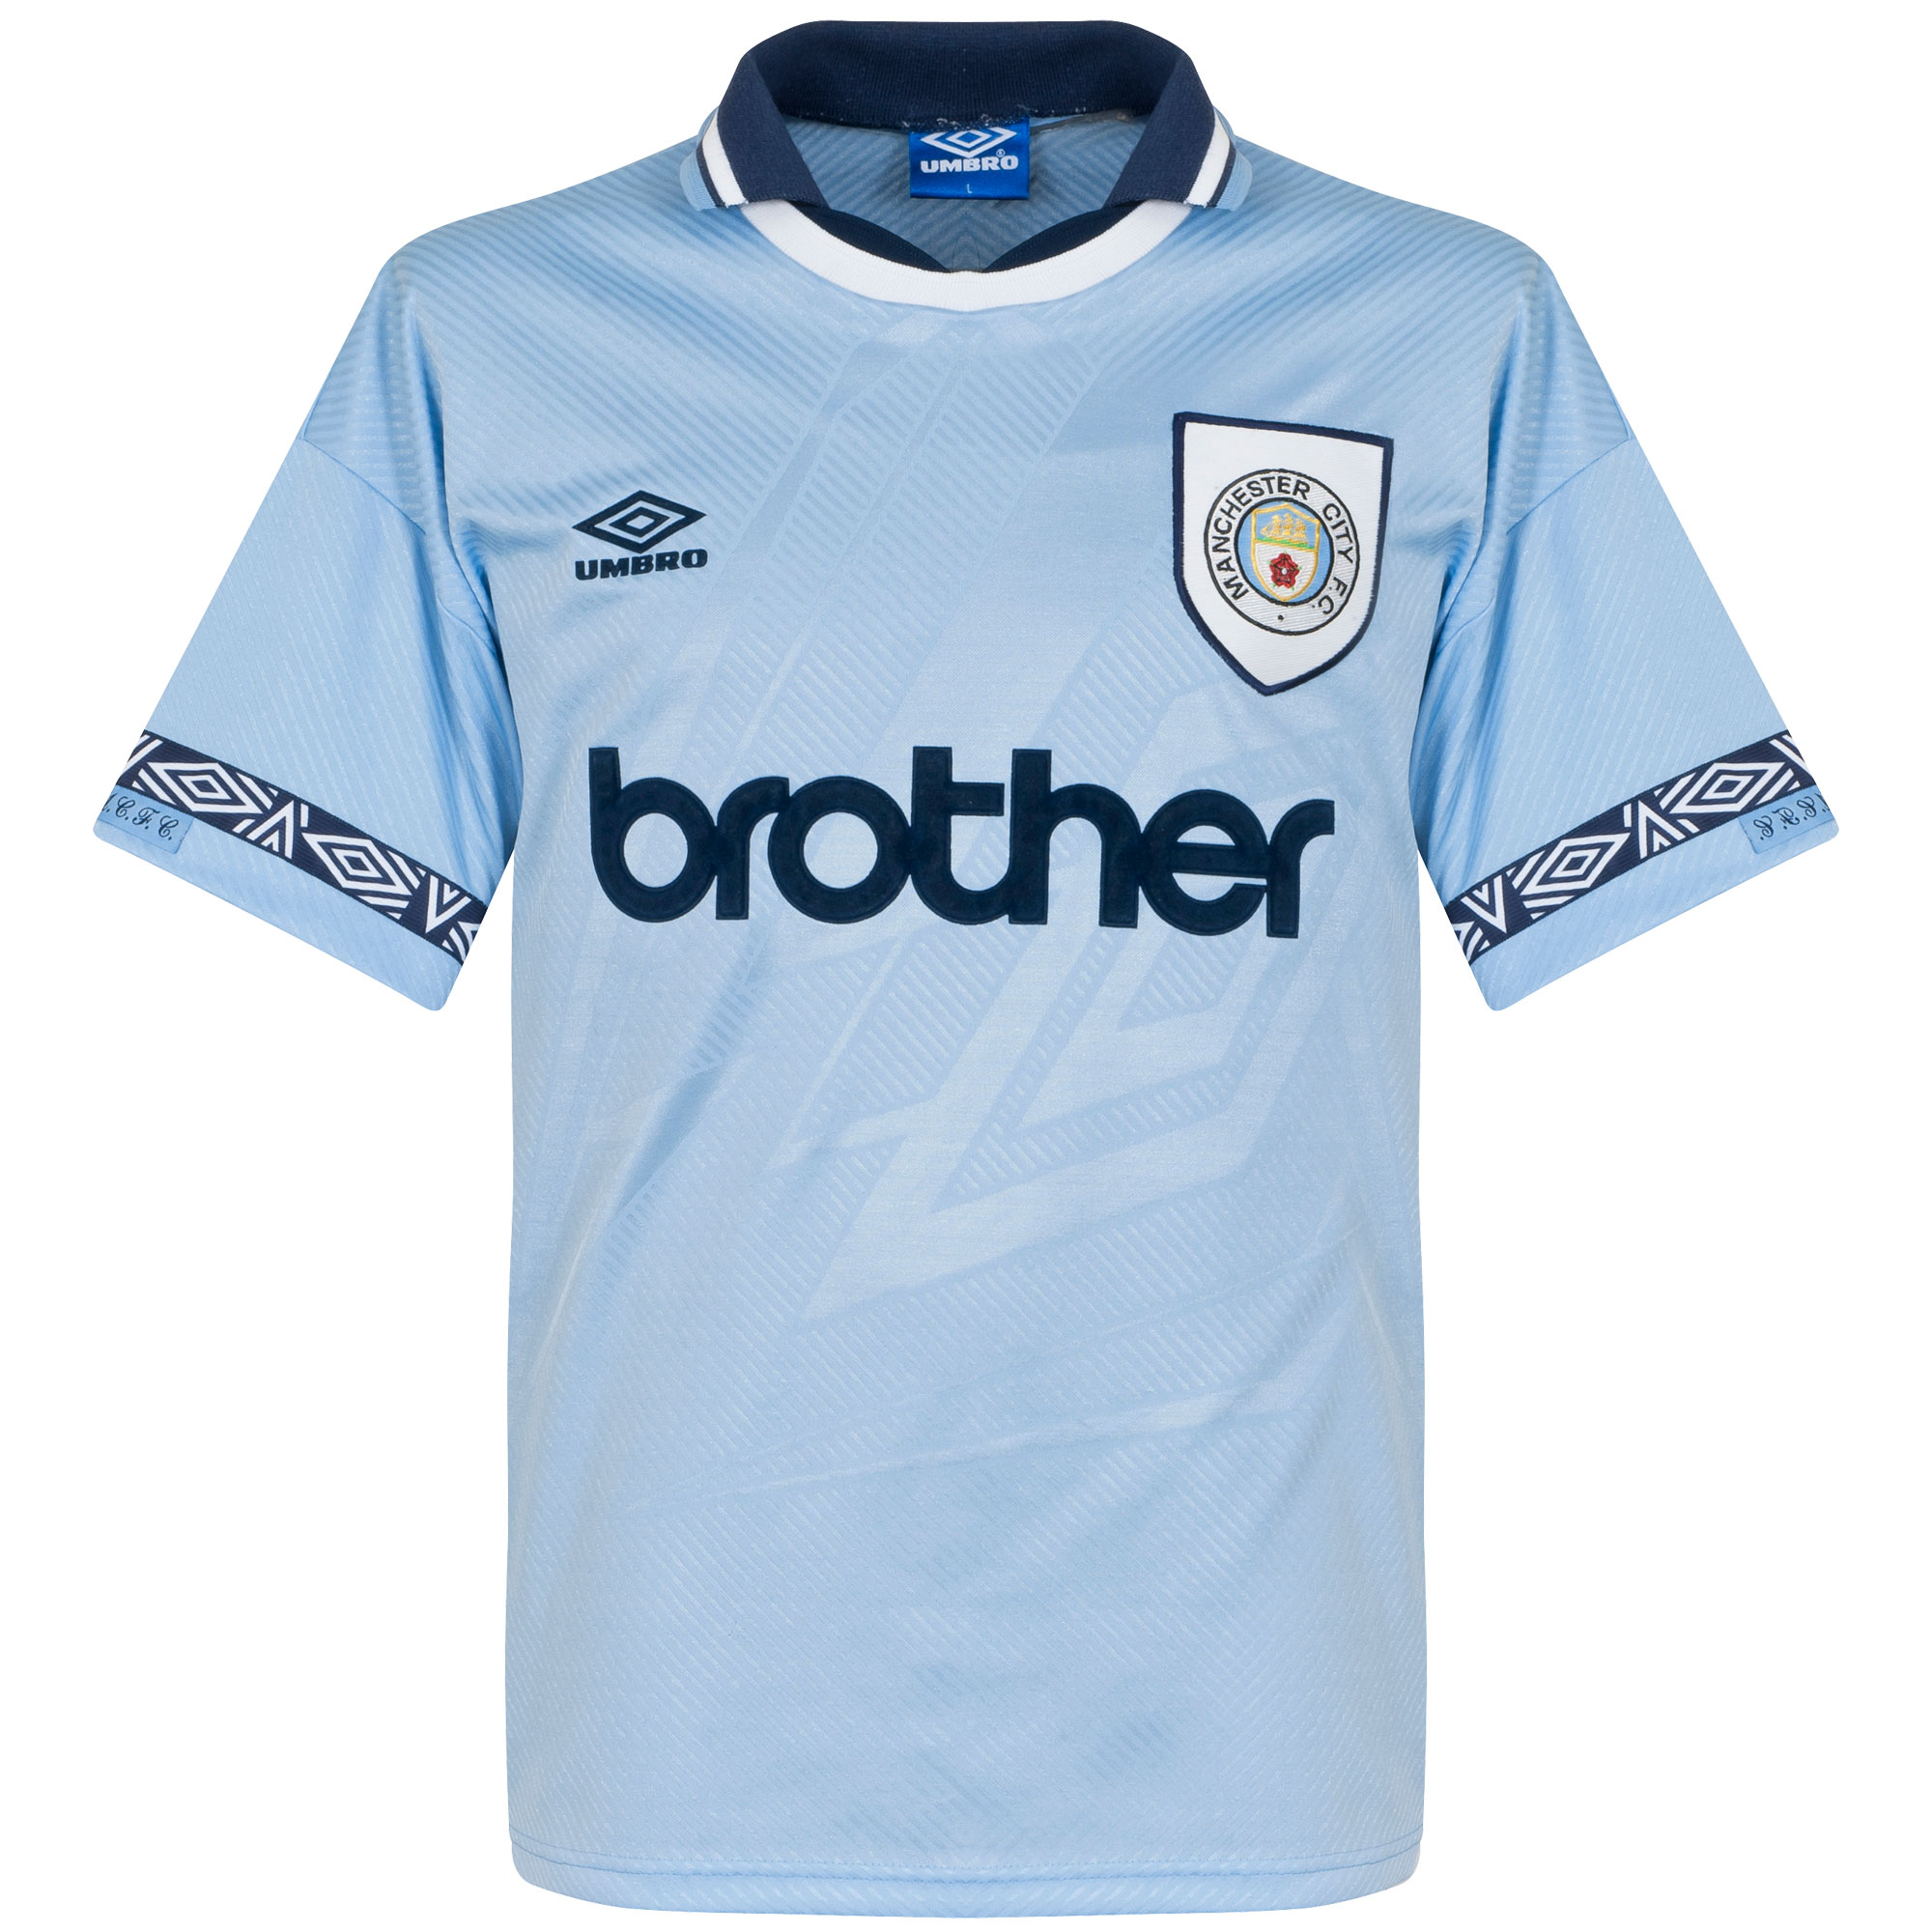 Umbro Manchester City 1993-1995 Home Shirt - USED Condition (Great) - Size Large